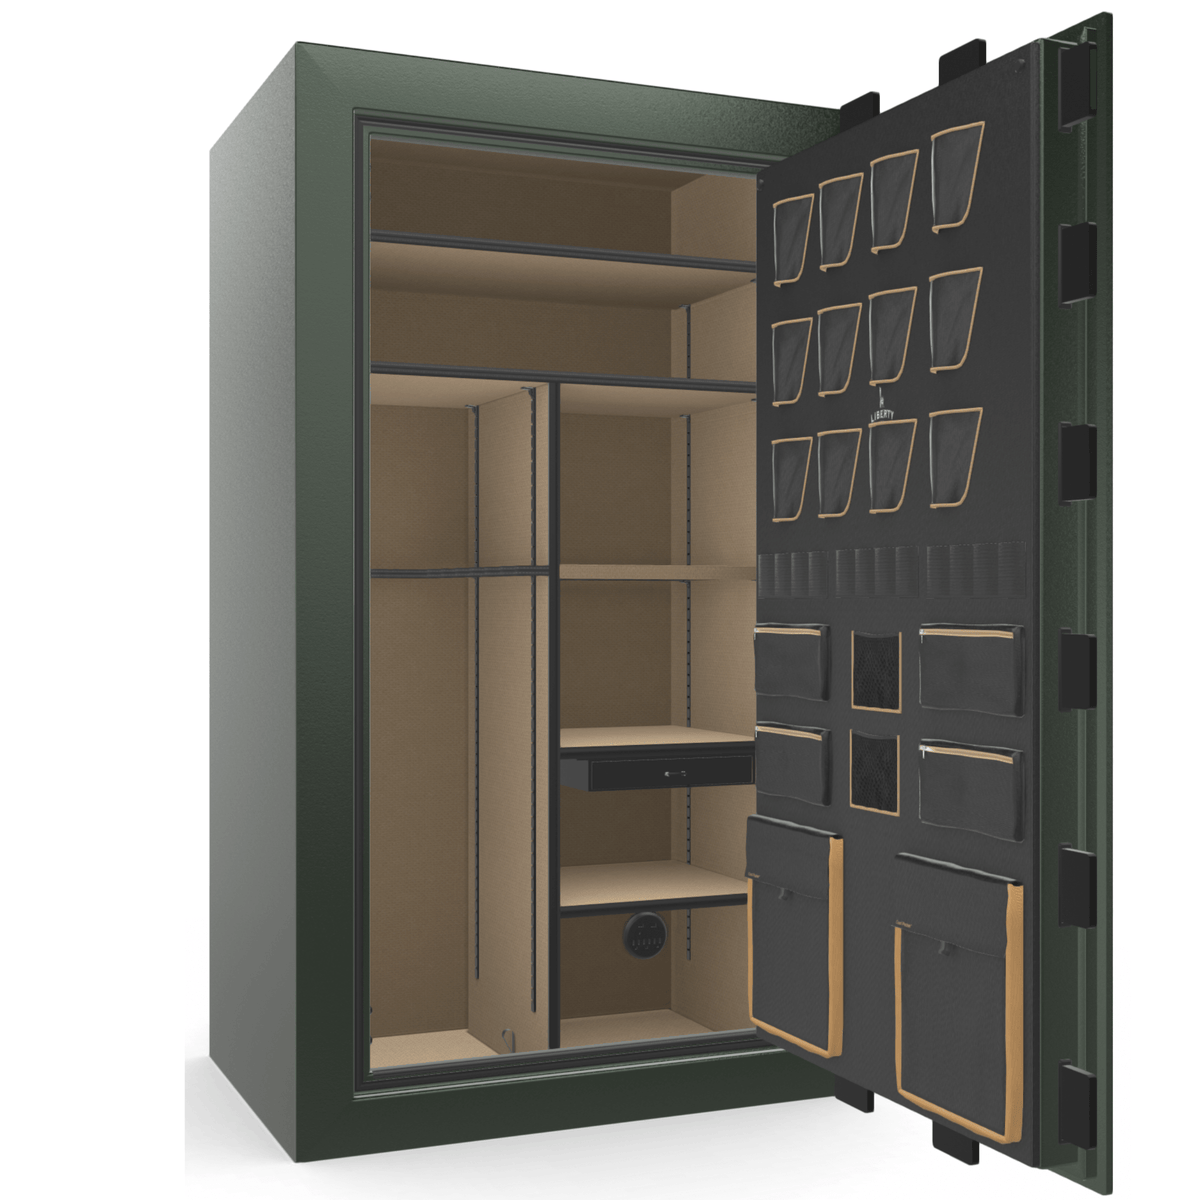 "Classic Plus | 50 | Level 7 Security | 110 Minute Fire Protection | Green | Brass Electronic Lock | 72.5""(H) x 42""(W) x 32""(D)"